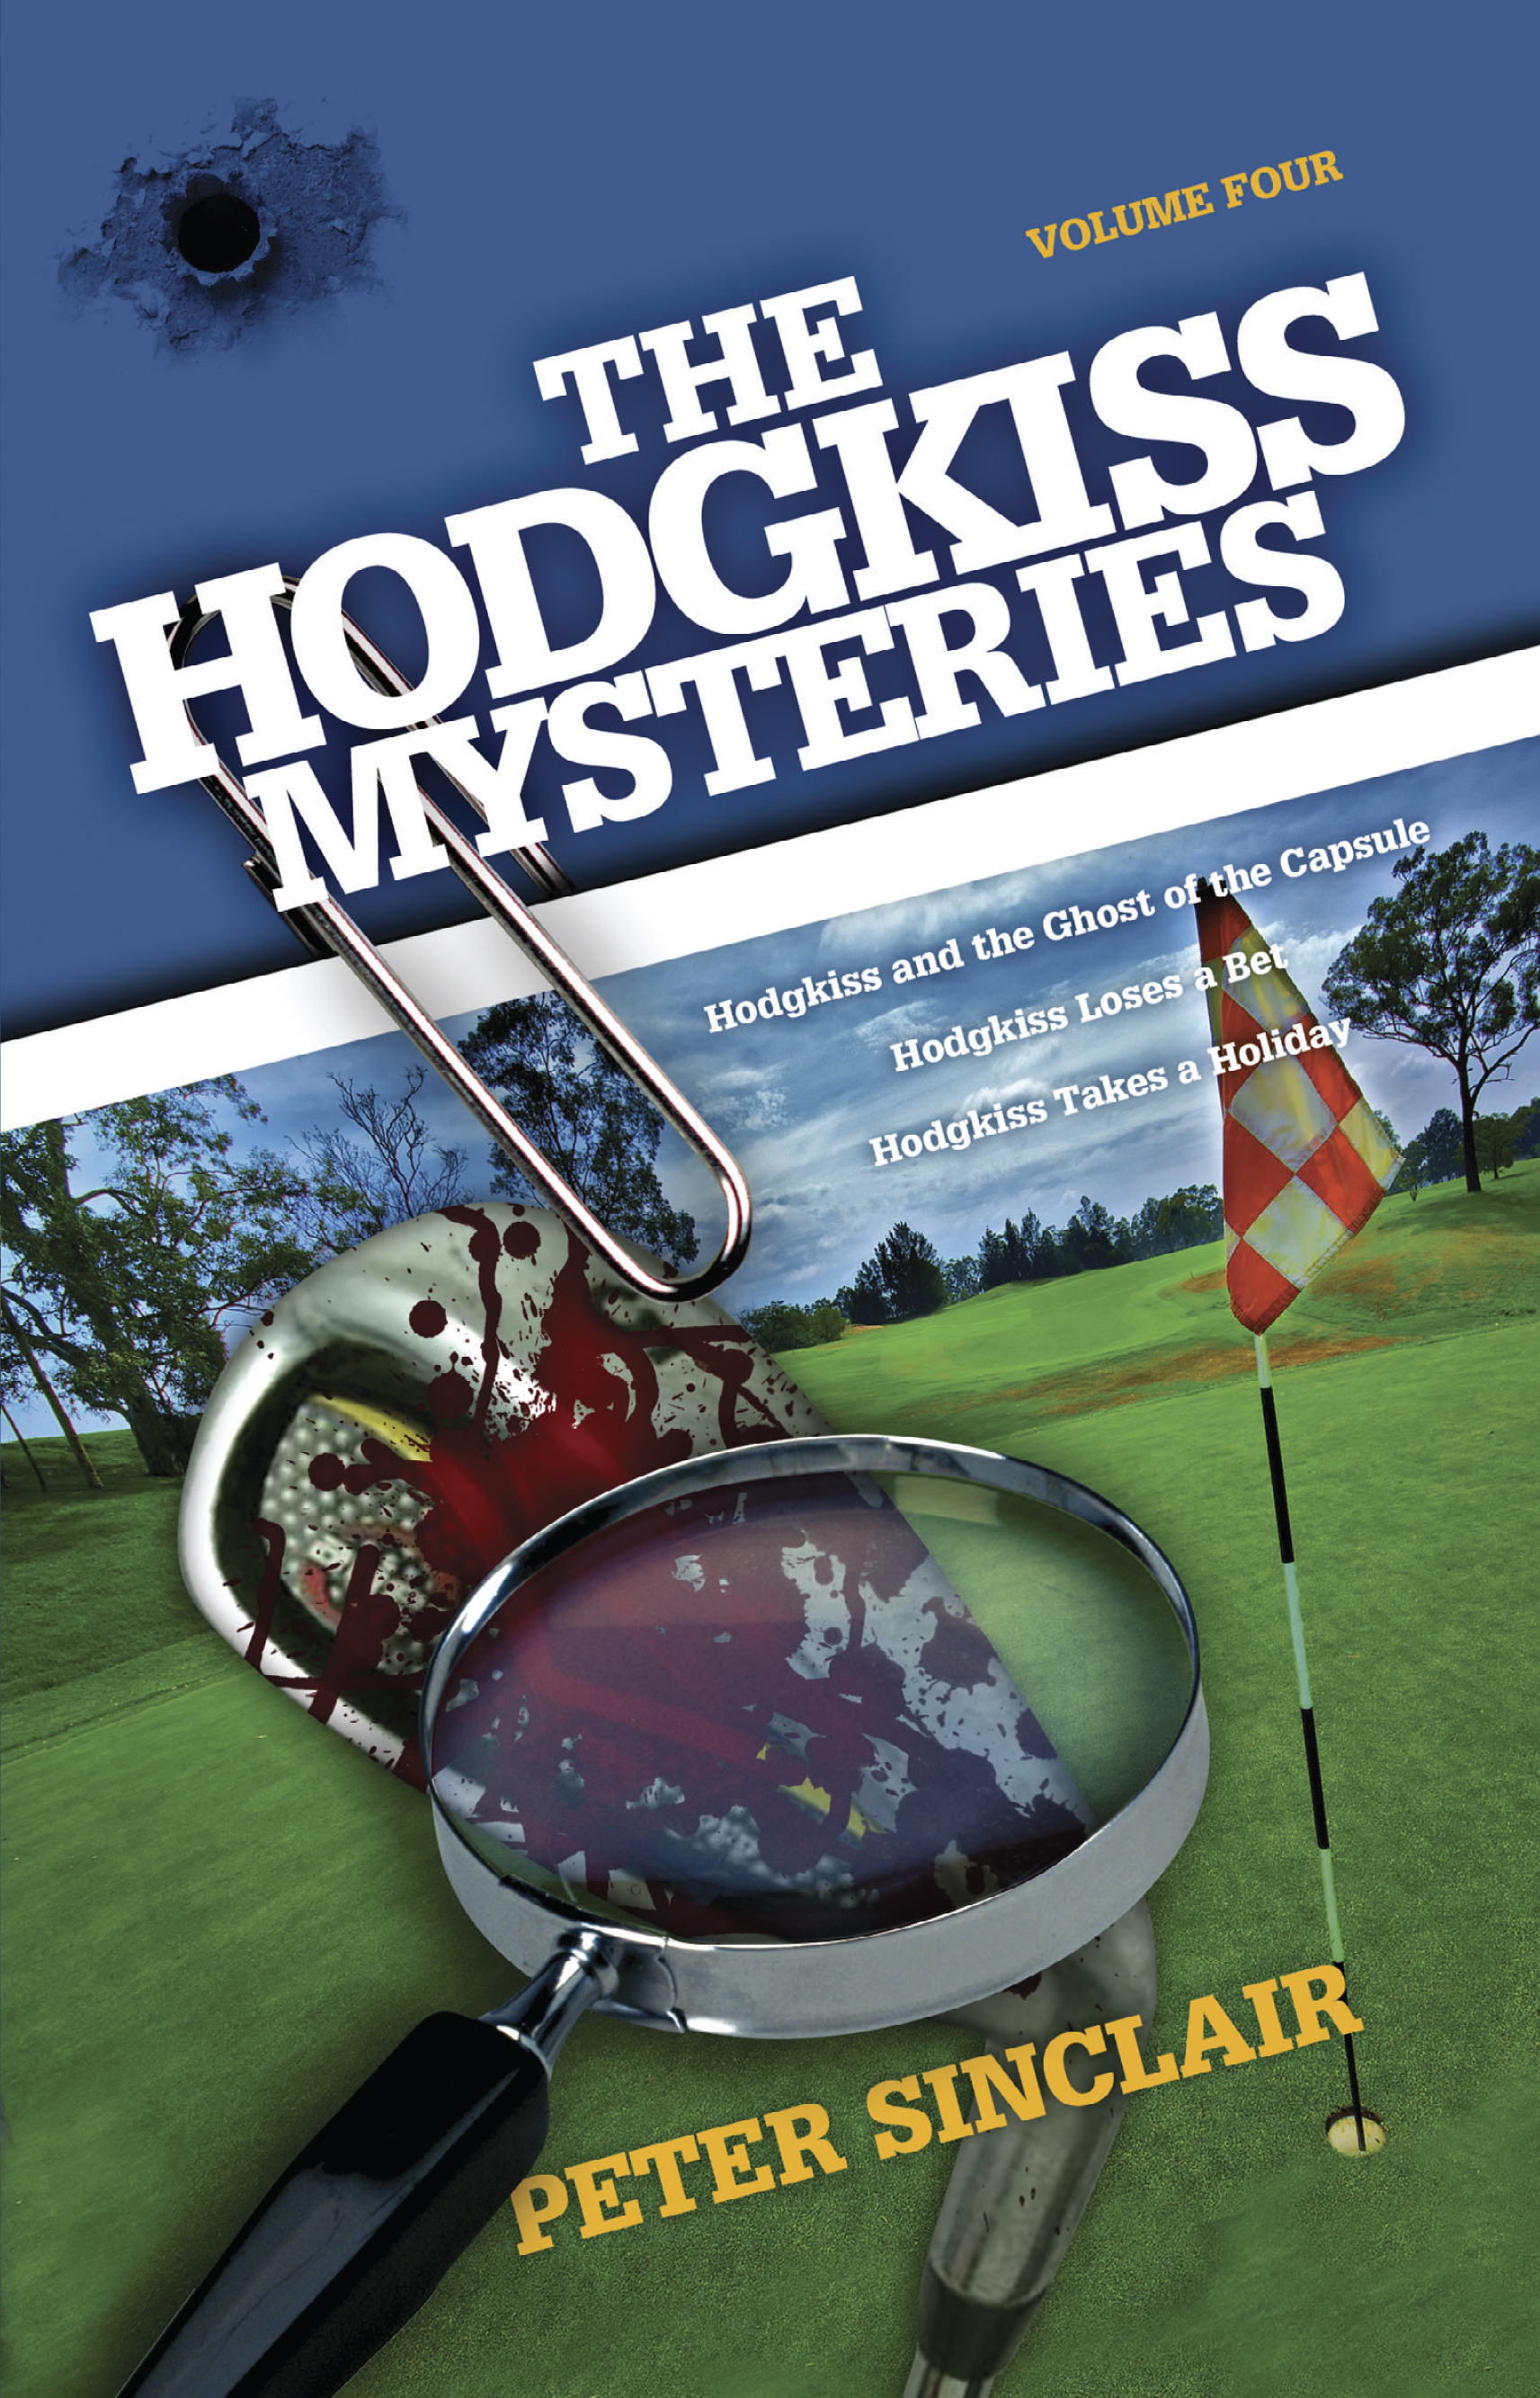 Hodgkiss Mysteries_The__cover_VOL IV.jpg